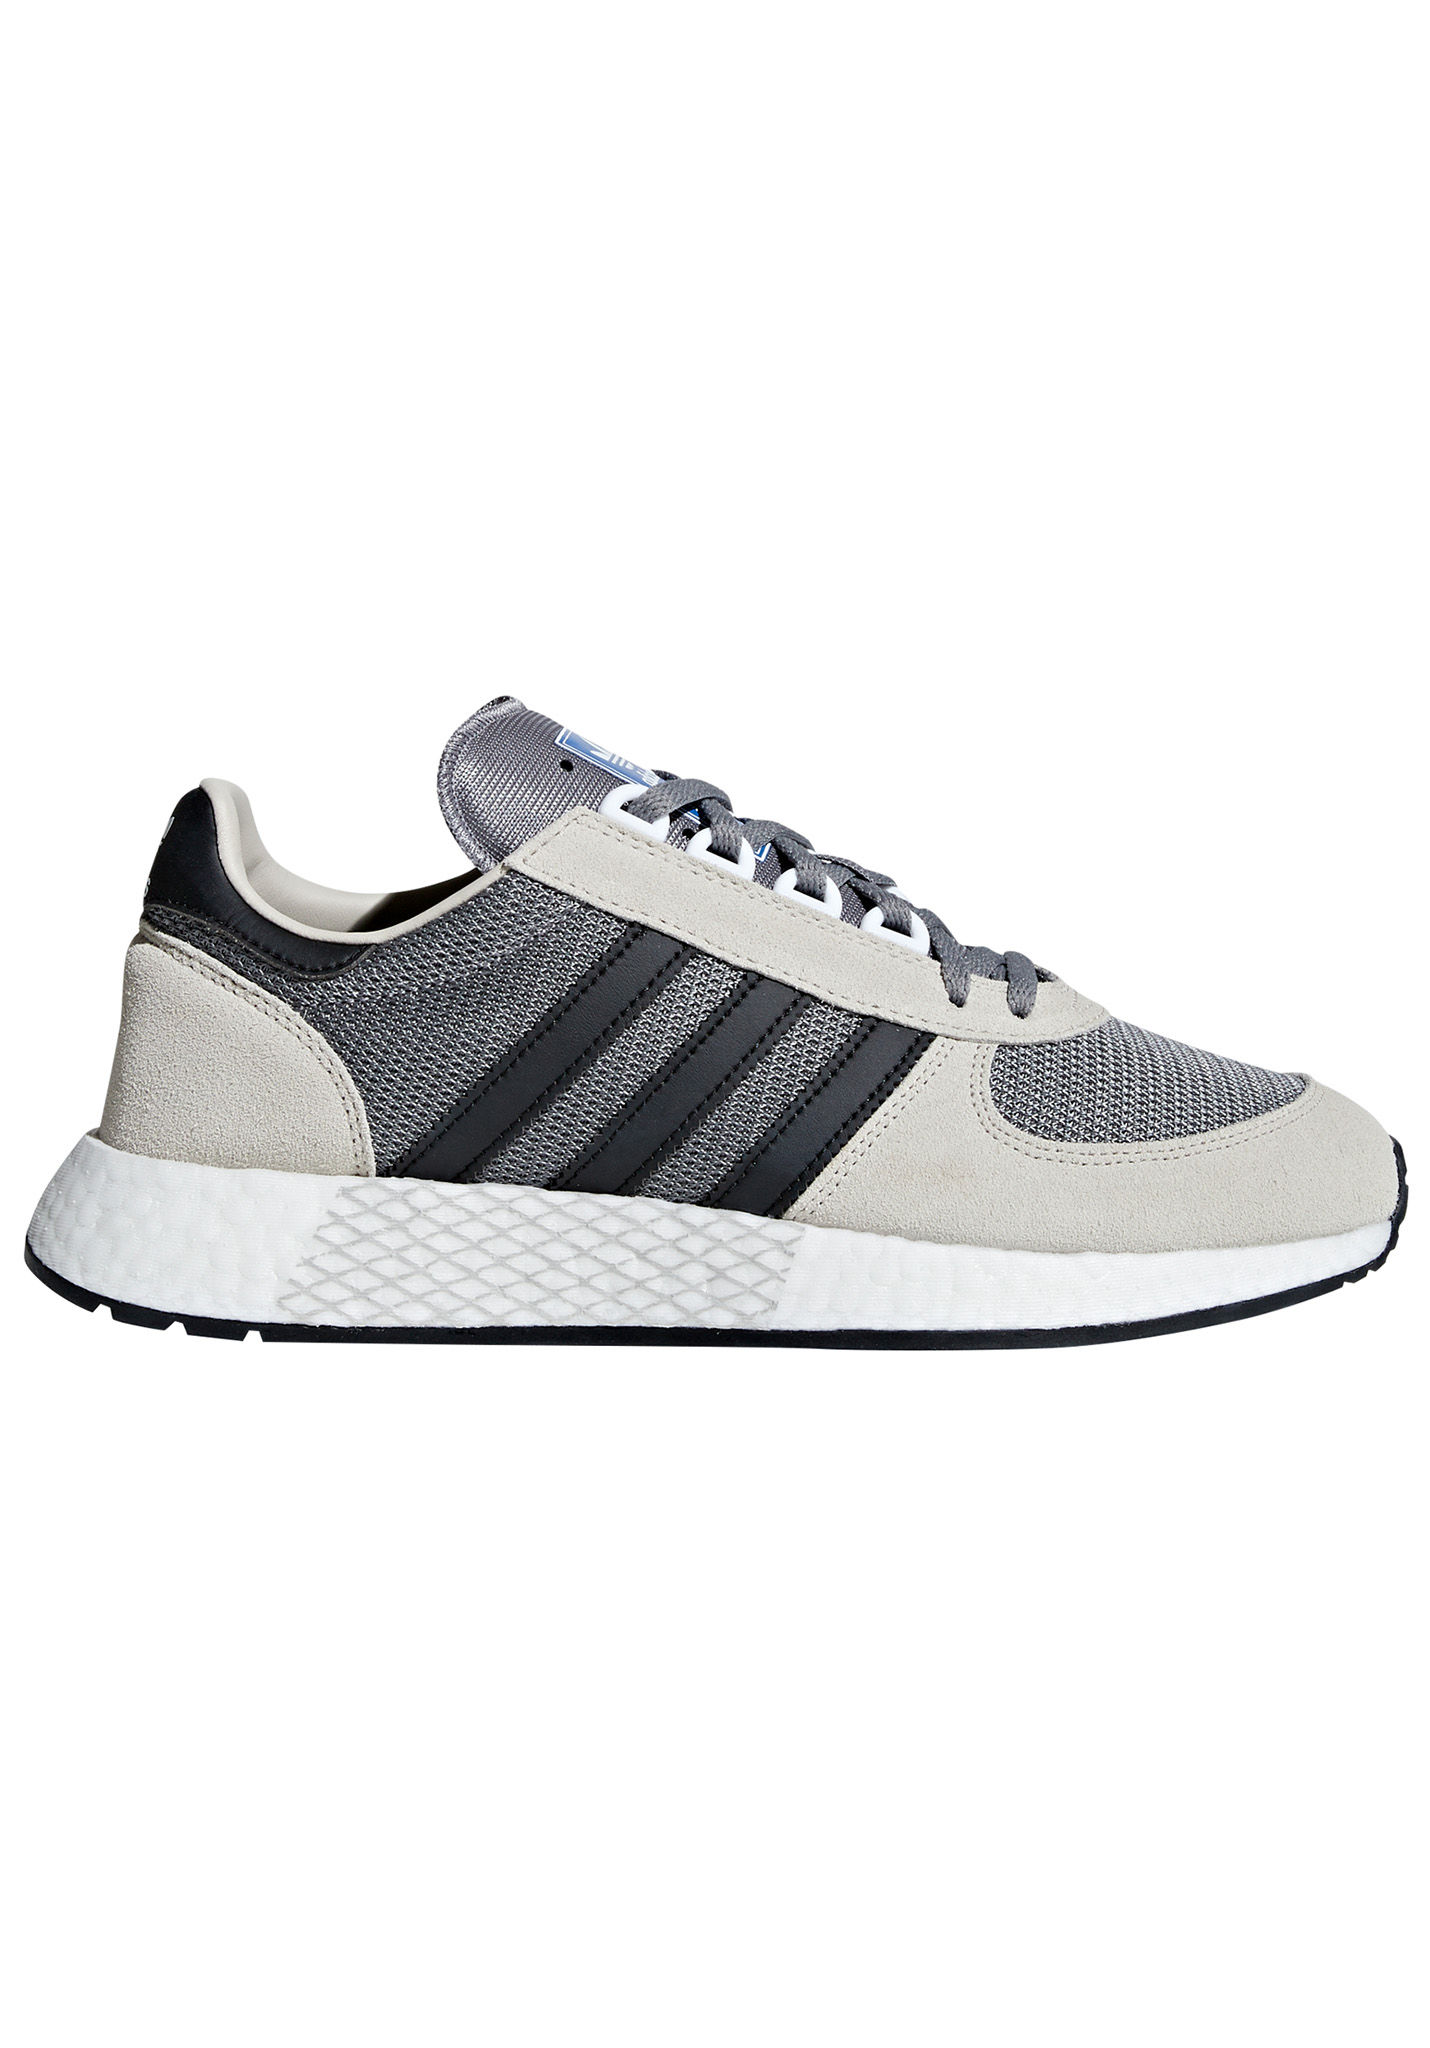 entire collection later details for adidas Originals Marathon Tech - Sneaker für Herren - Beige